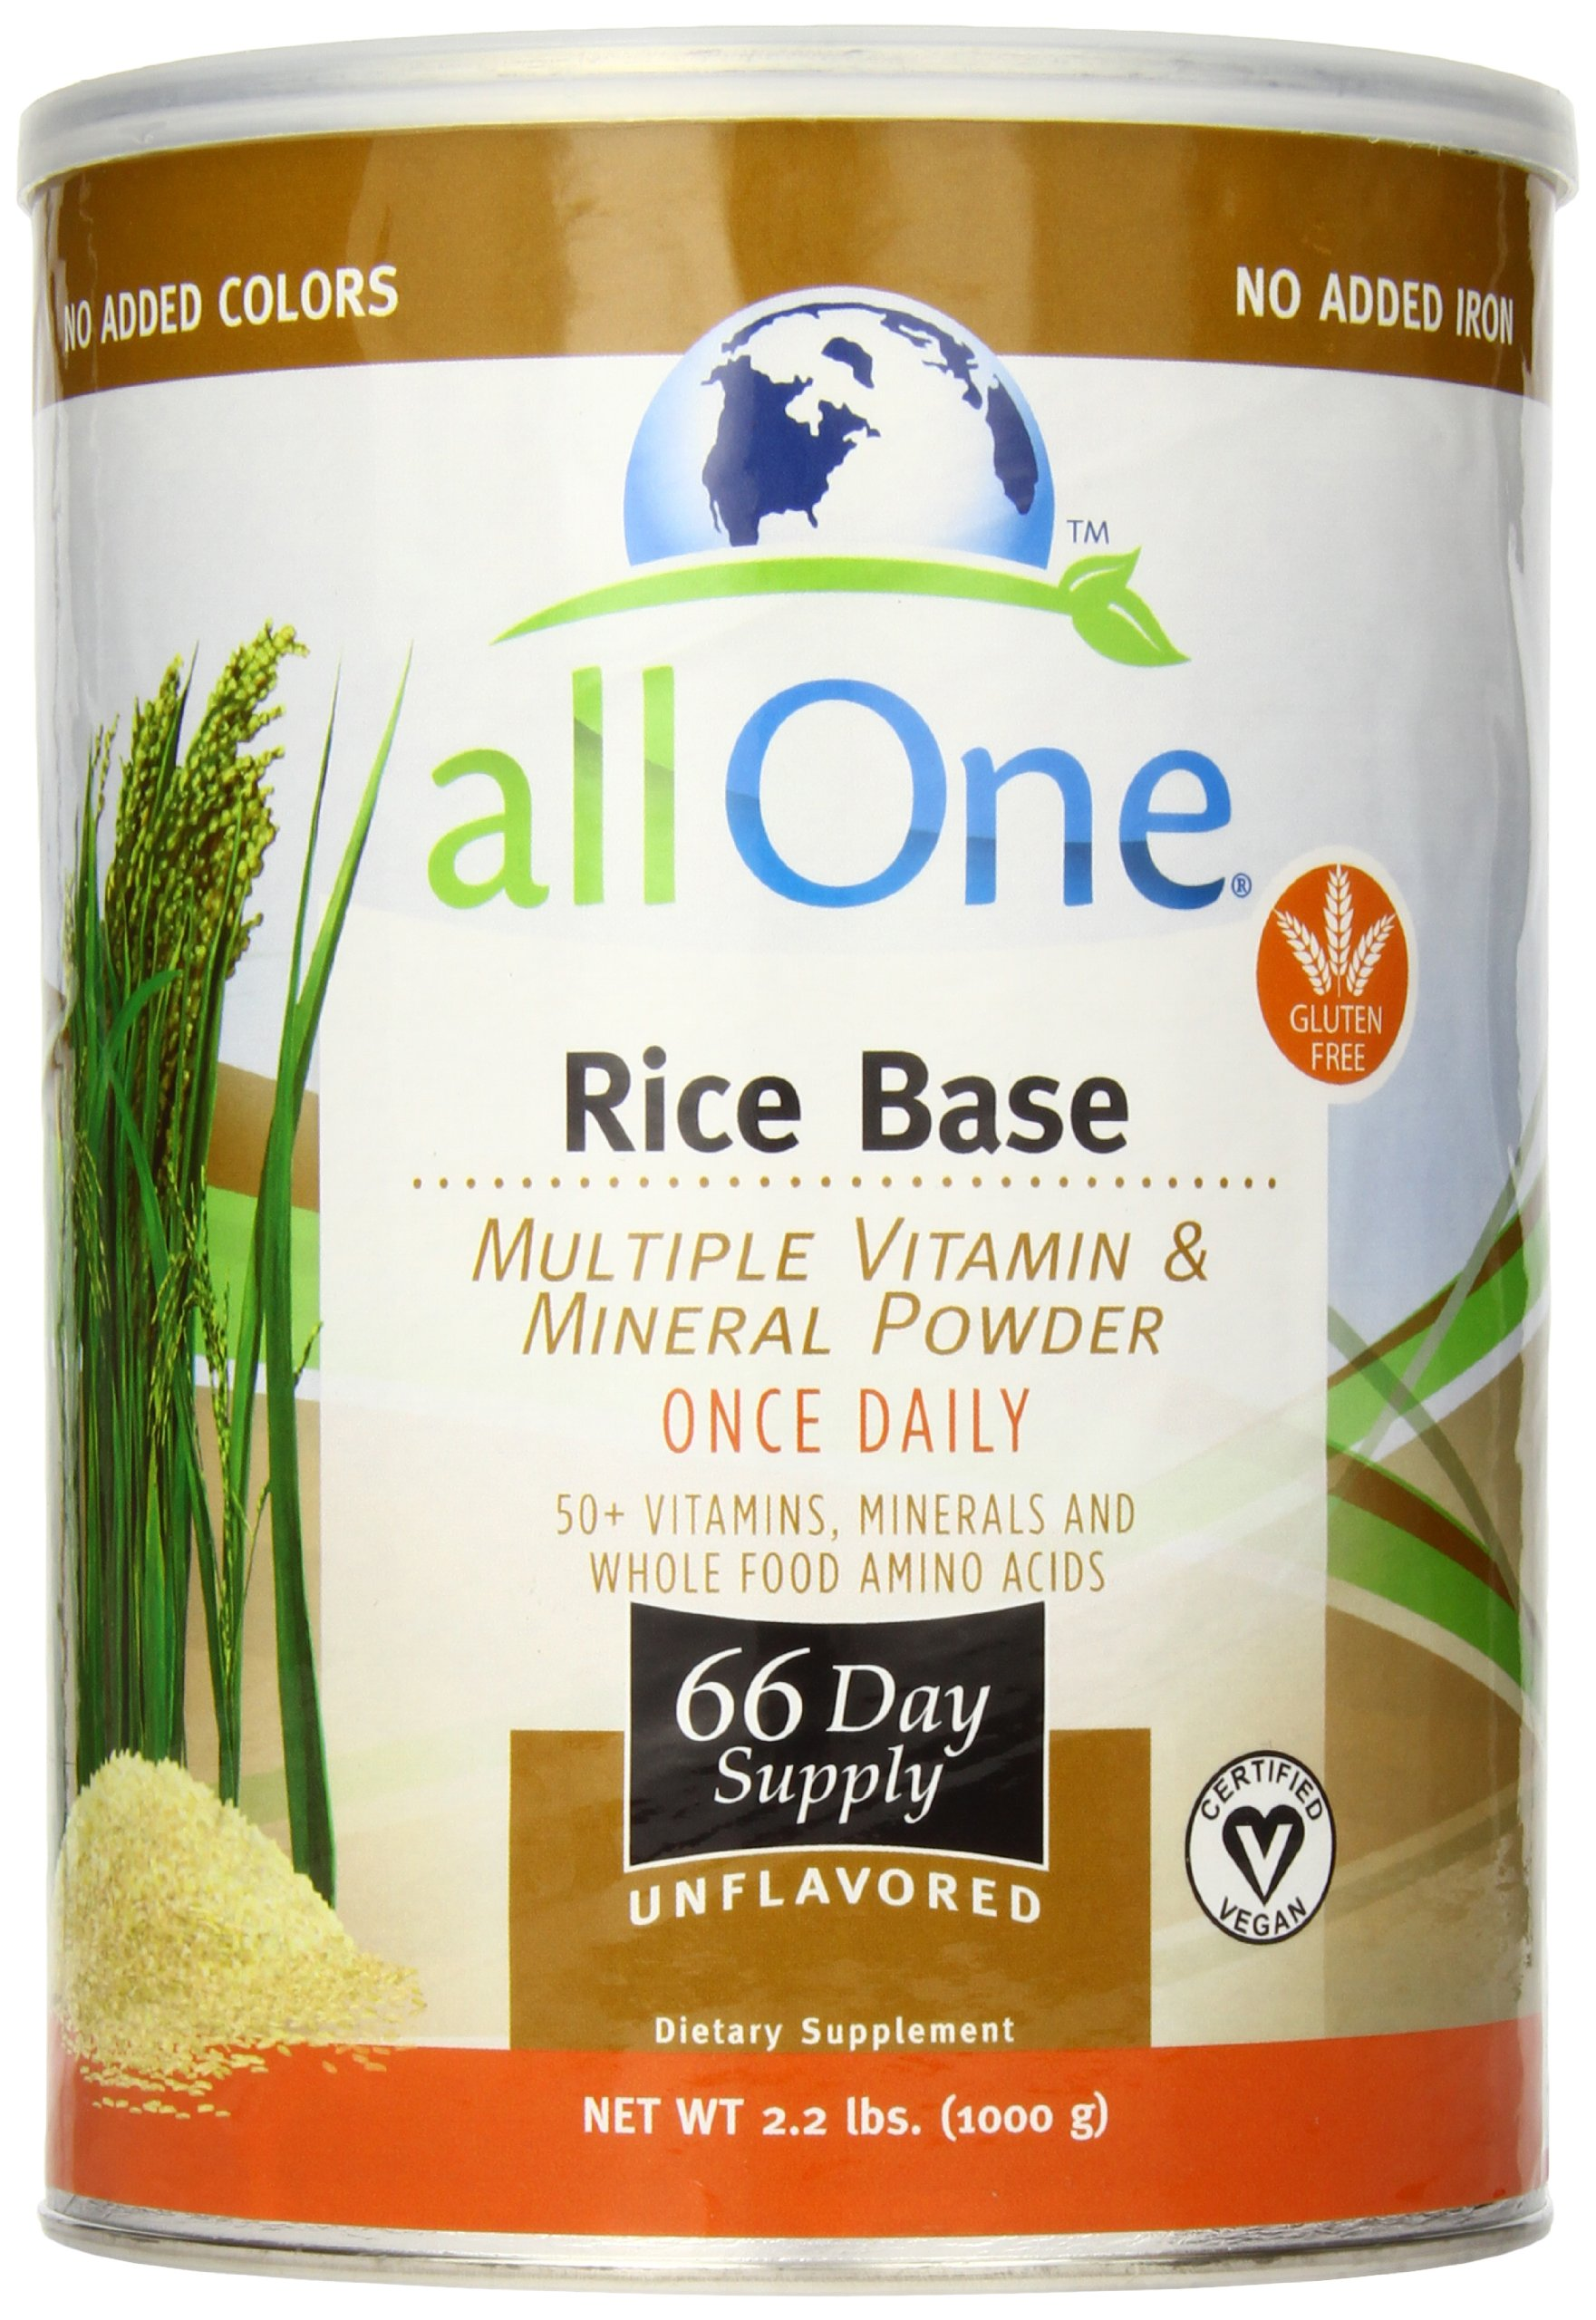 All One Nutrient Powder Rice Base All One 2.2 lbs Powder